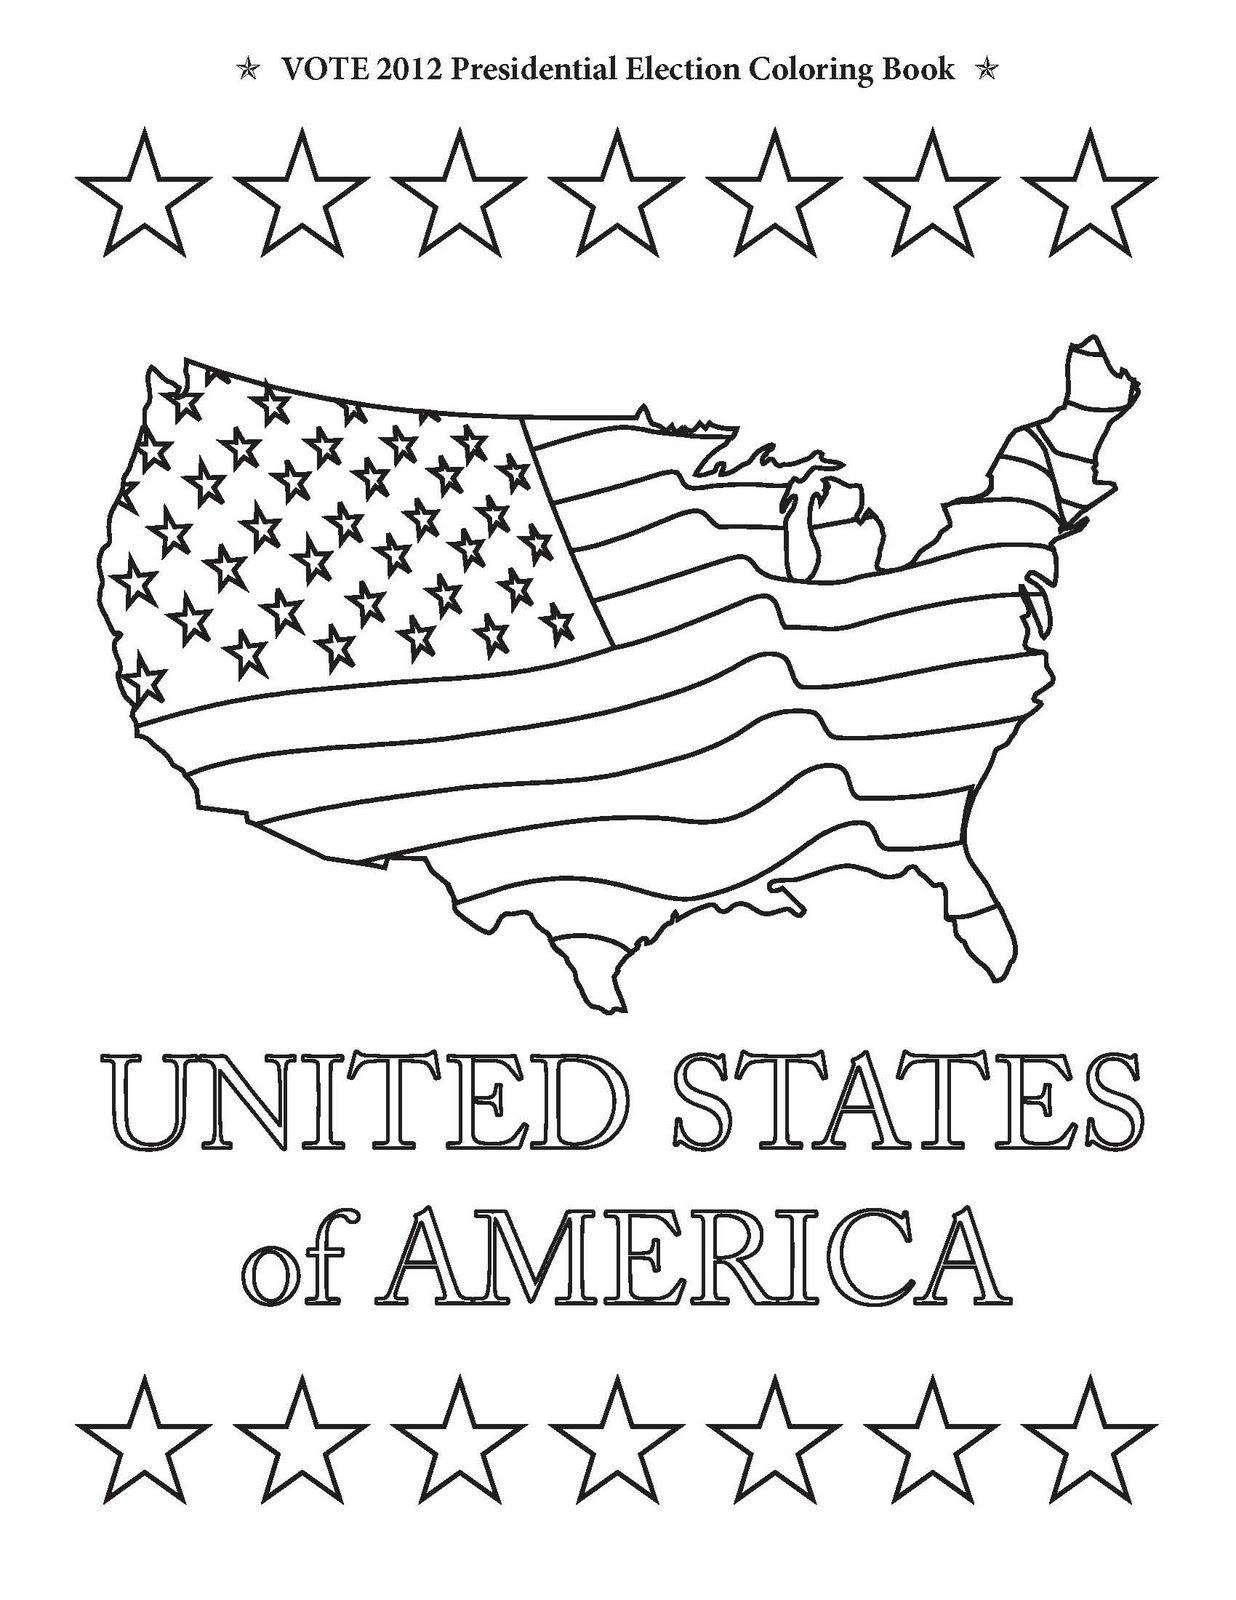 Stars USA Map And United States Of America From Vote 2012 Presidential Election Coloring Book